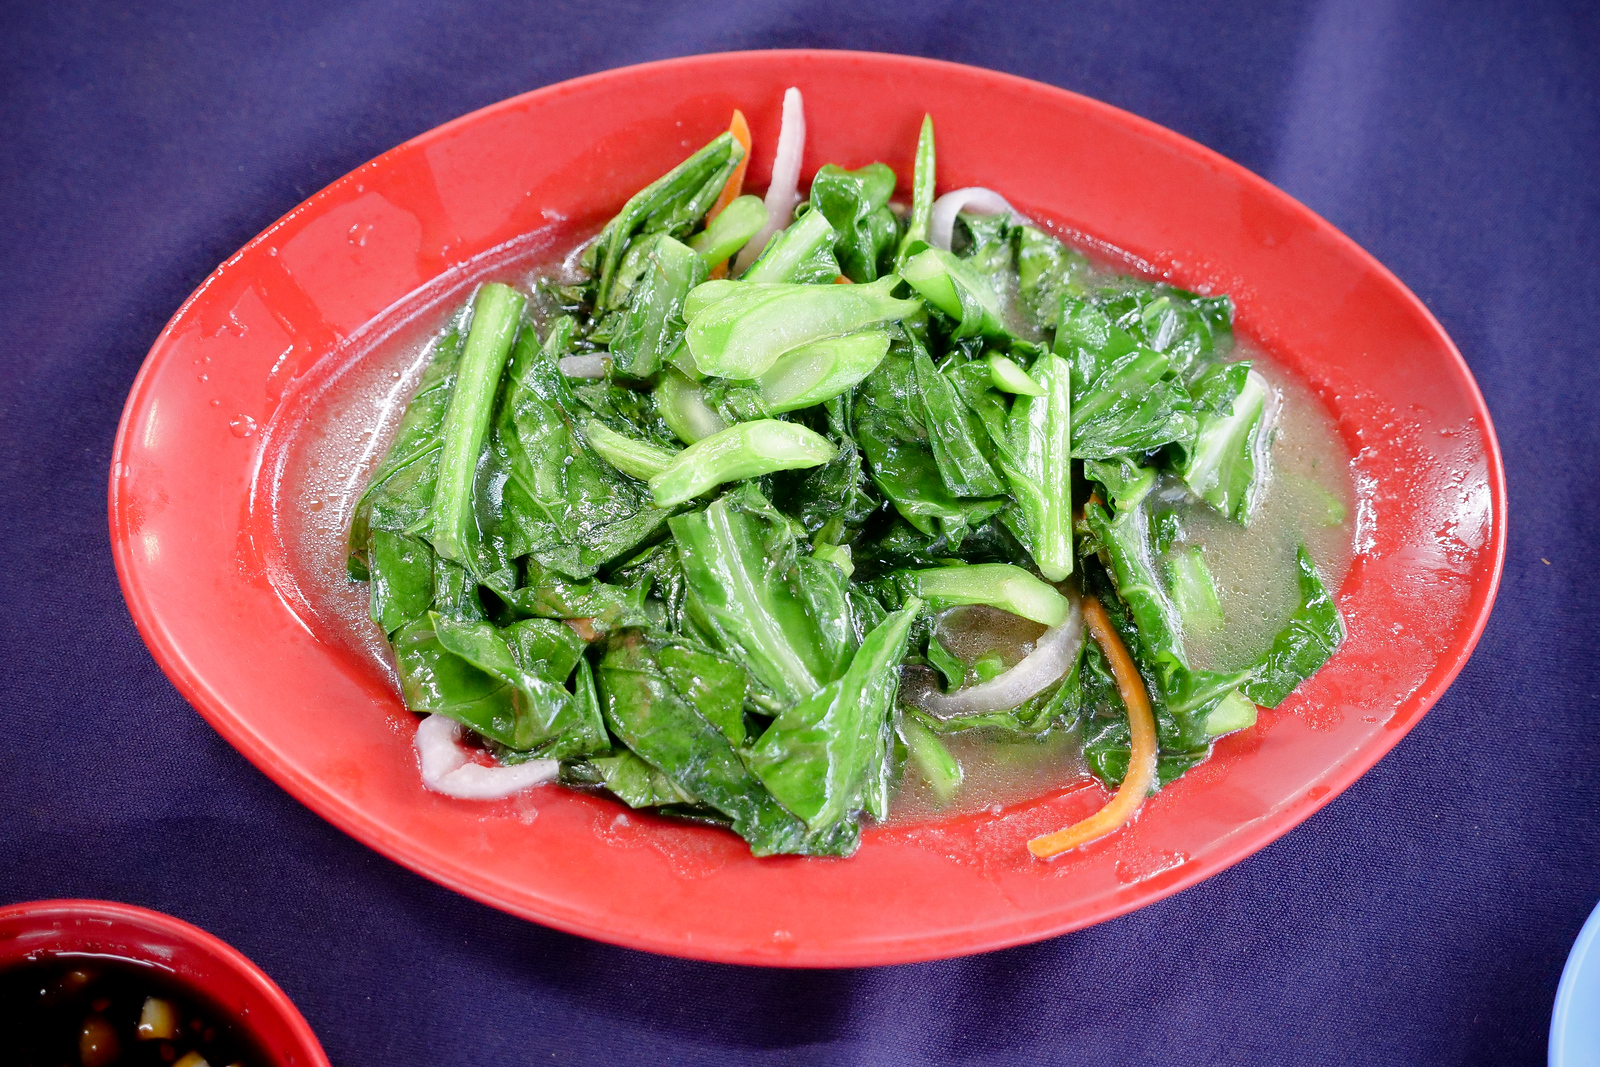 Simple vegetables go great with the salted and grilled options at Ikan Bakar Hj Musa Restaurant